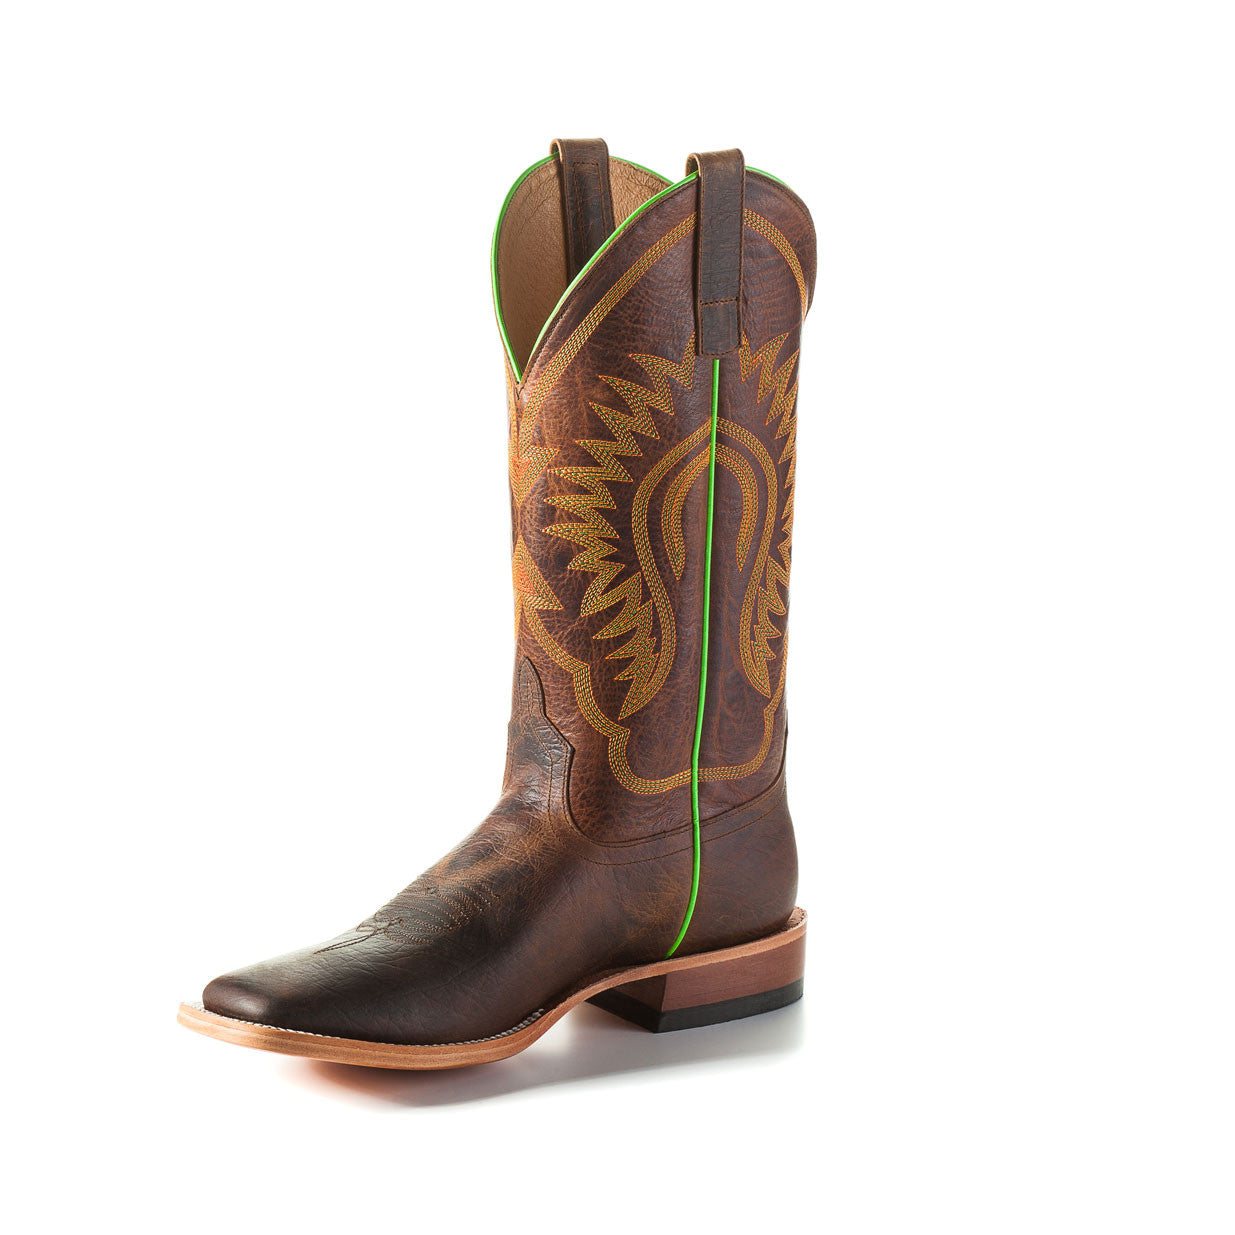 Horse Power Bison Square Toe Boots